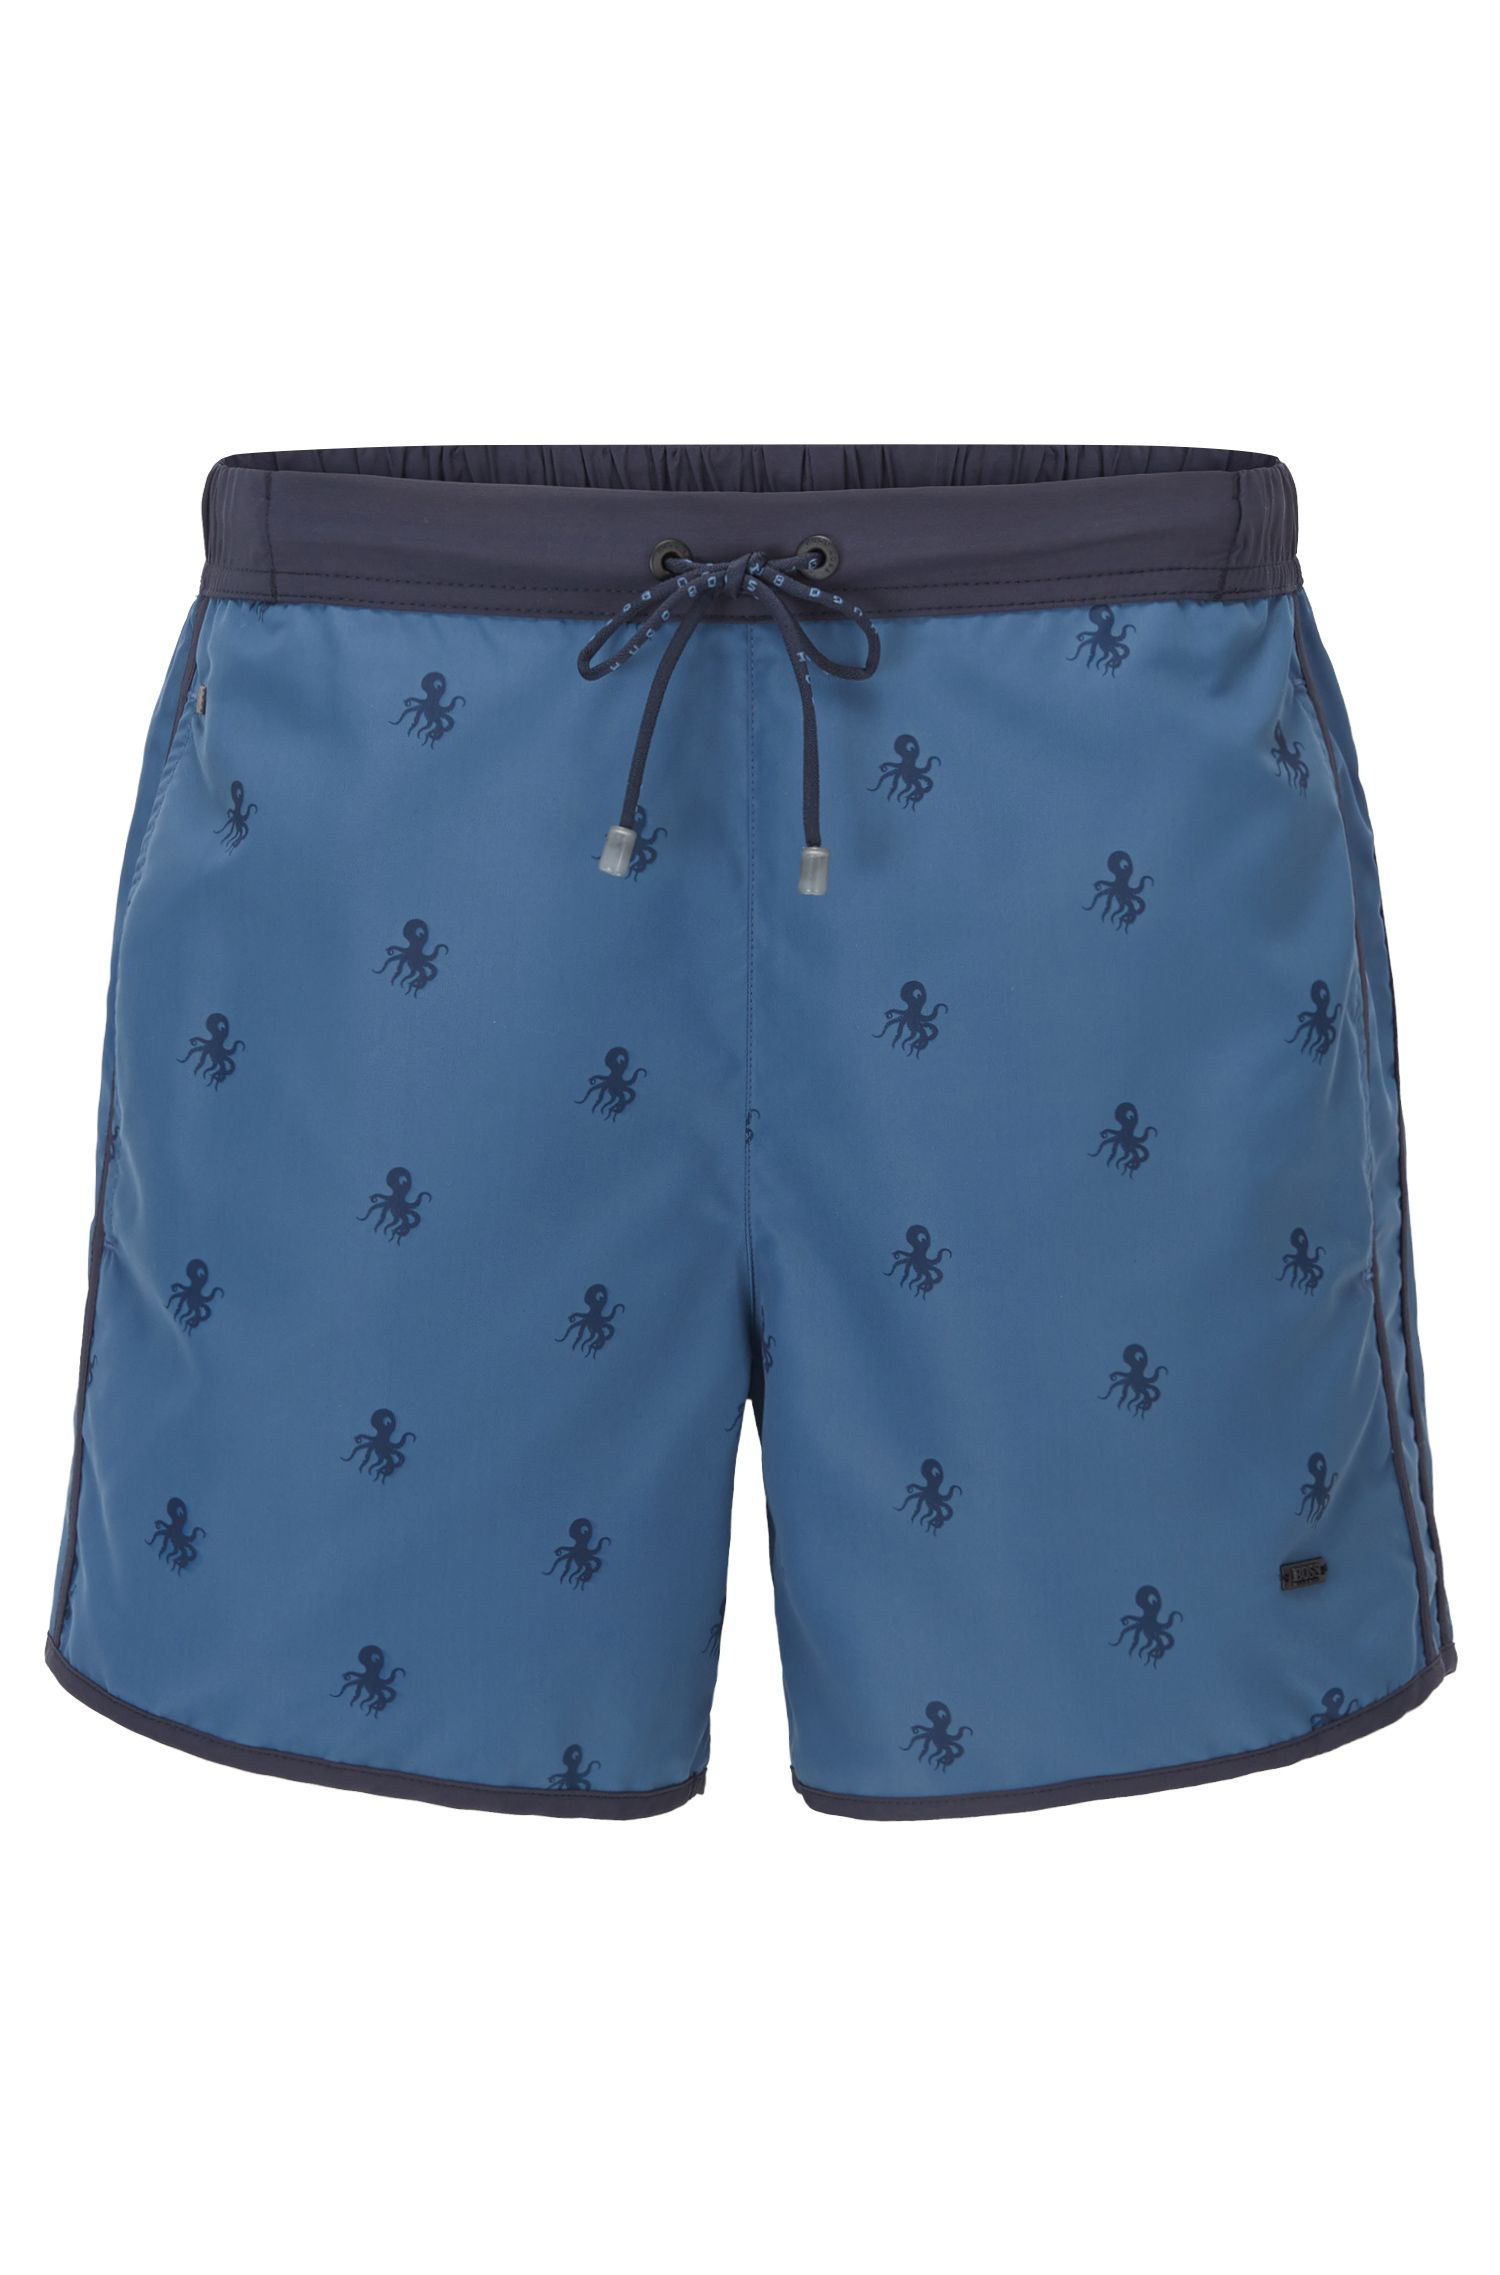 Drawstring swim shorts in technical fabric